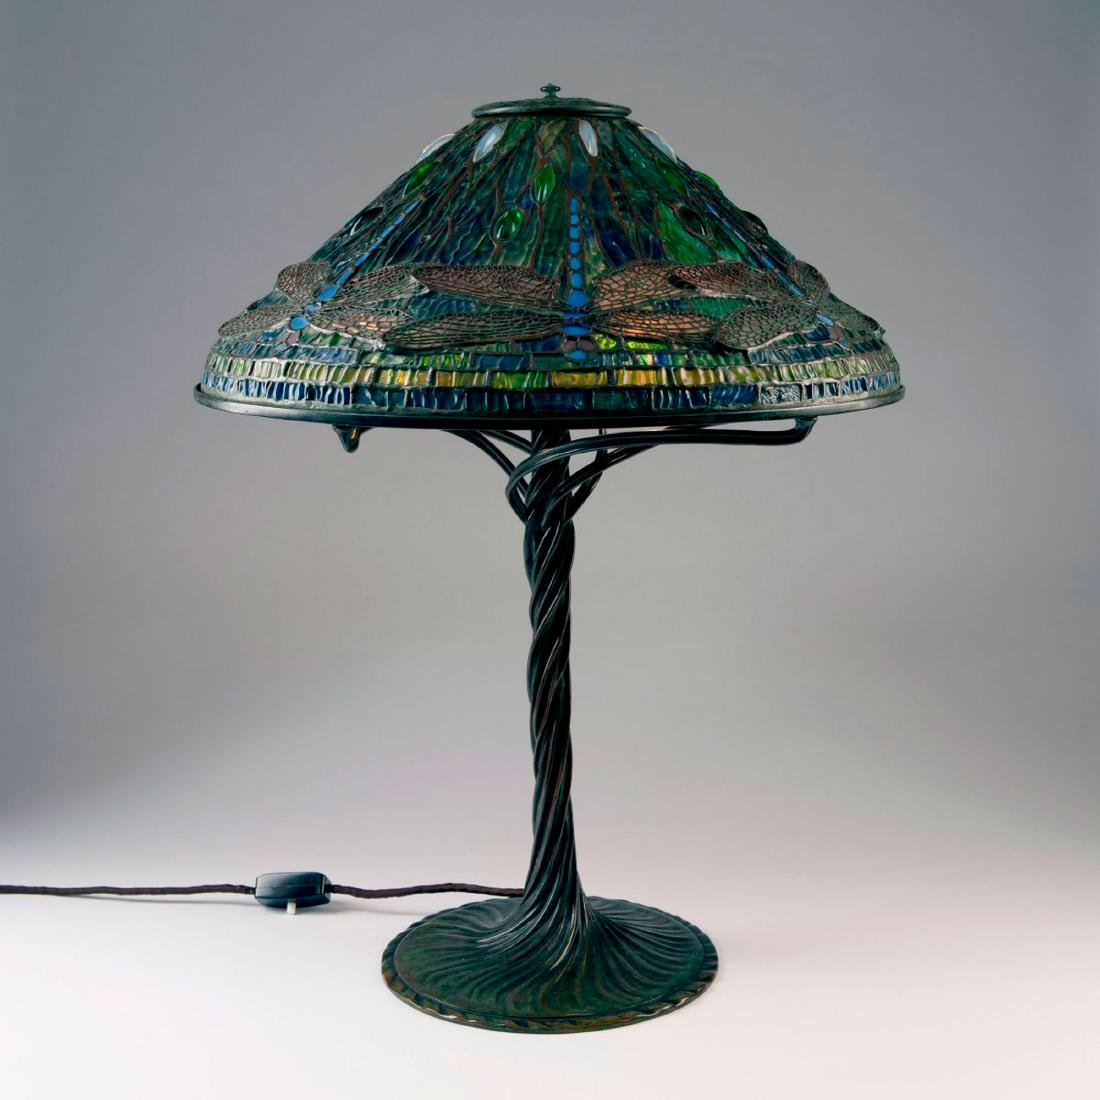 'Dragonfly' table light, 1899 - 2